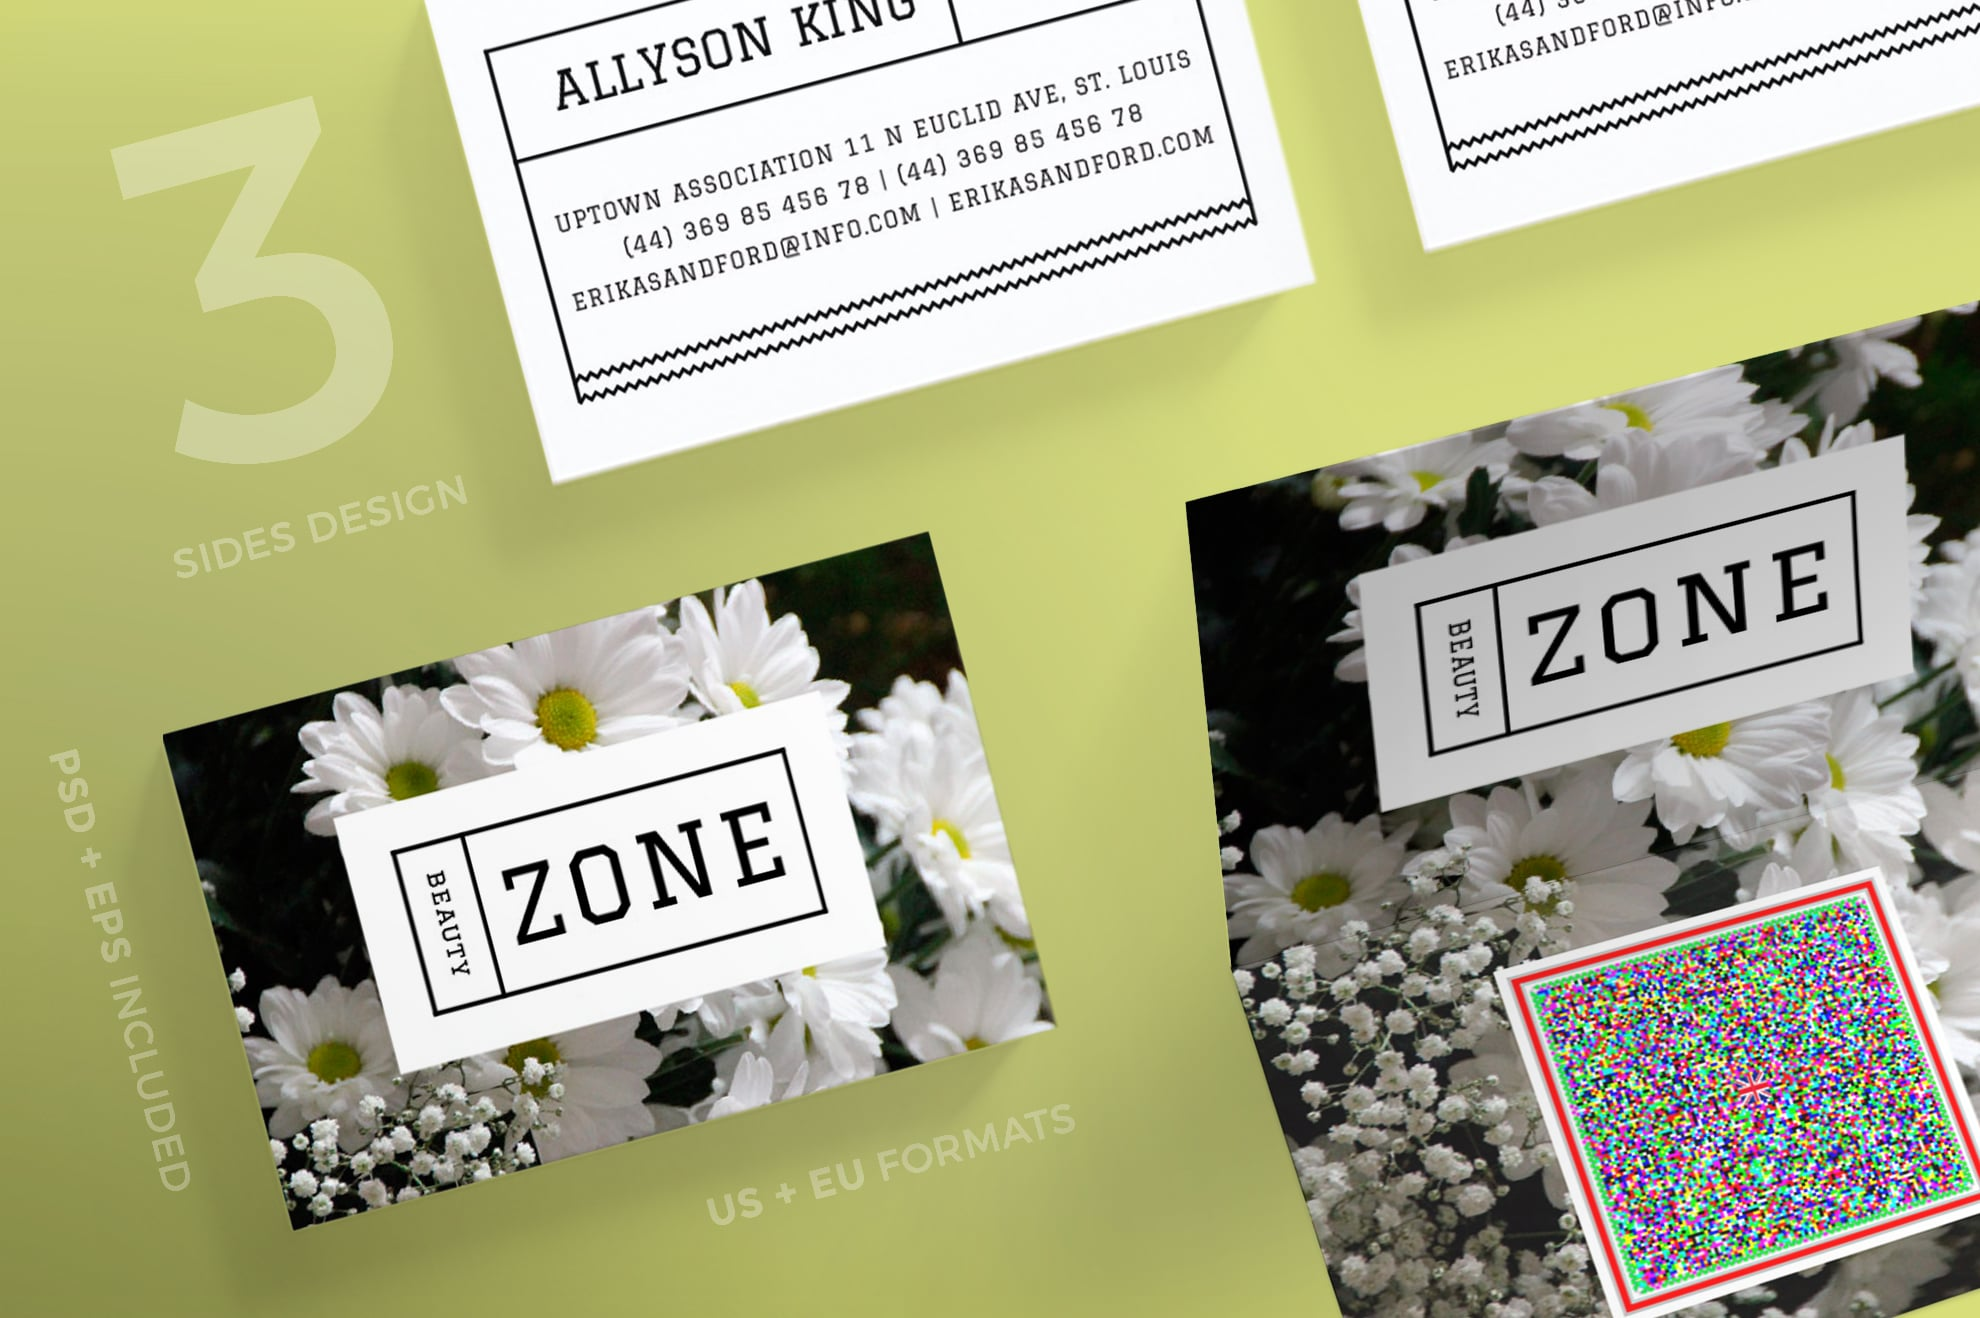 110 in 1 Business Card Bundle - 030 bc beauty zone 54 0